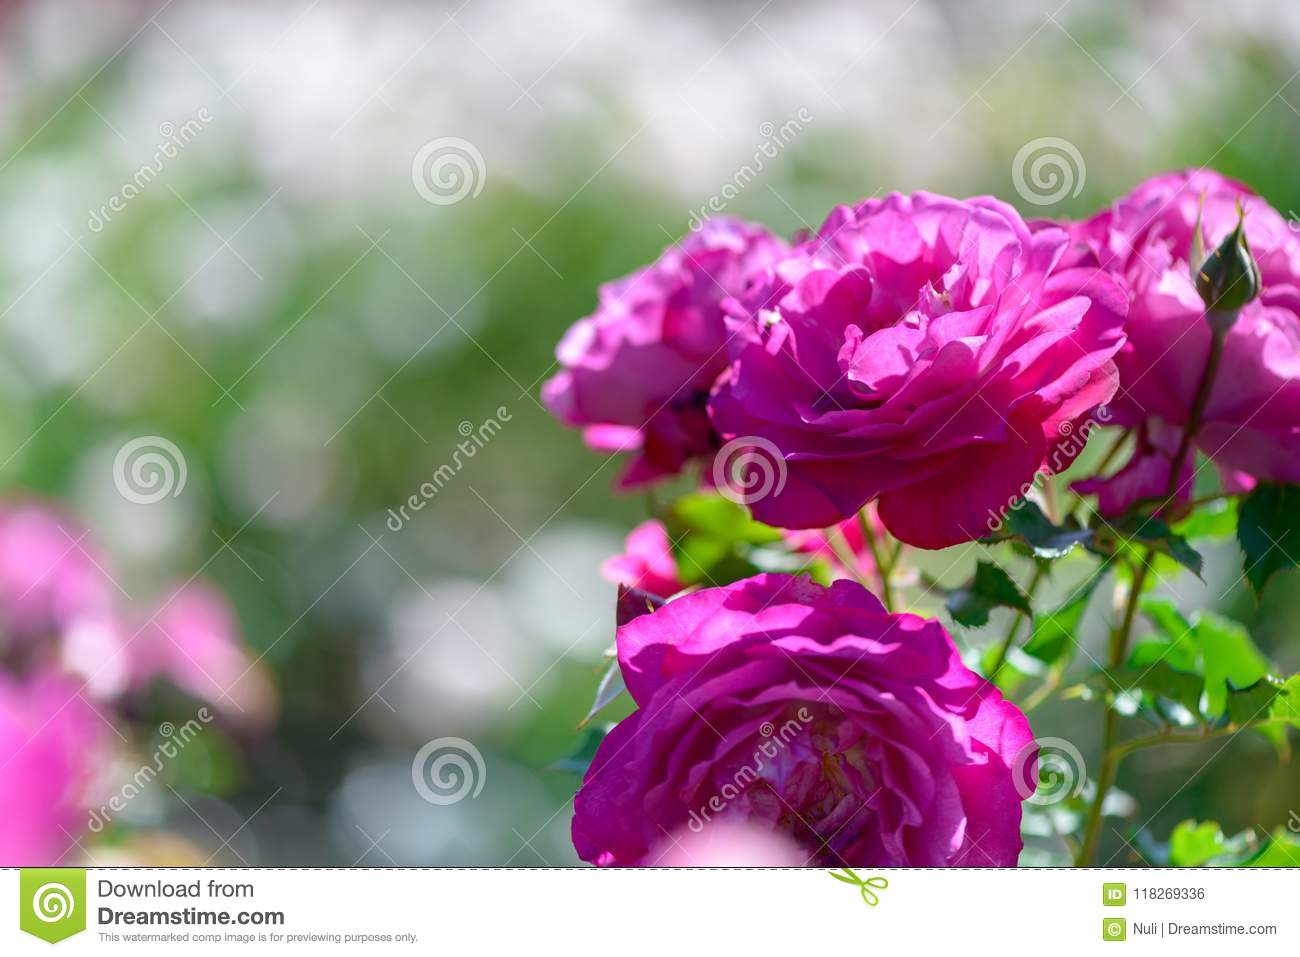 Beautiful pink and purple roses flowers with blurred green download beautiful pink and purple roses flowers with blurred green background stock photo image of izmirmasajfo